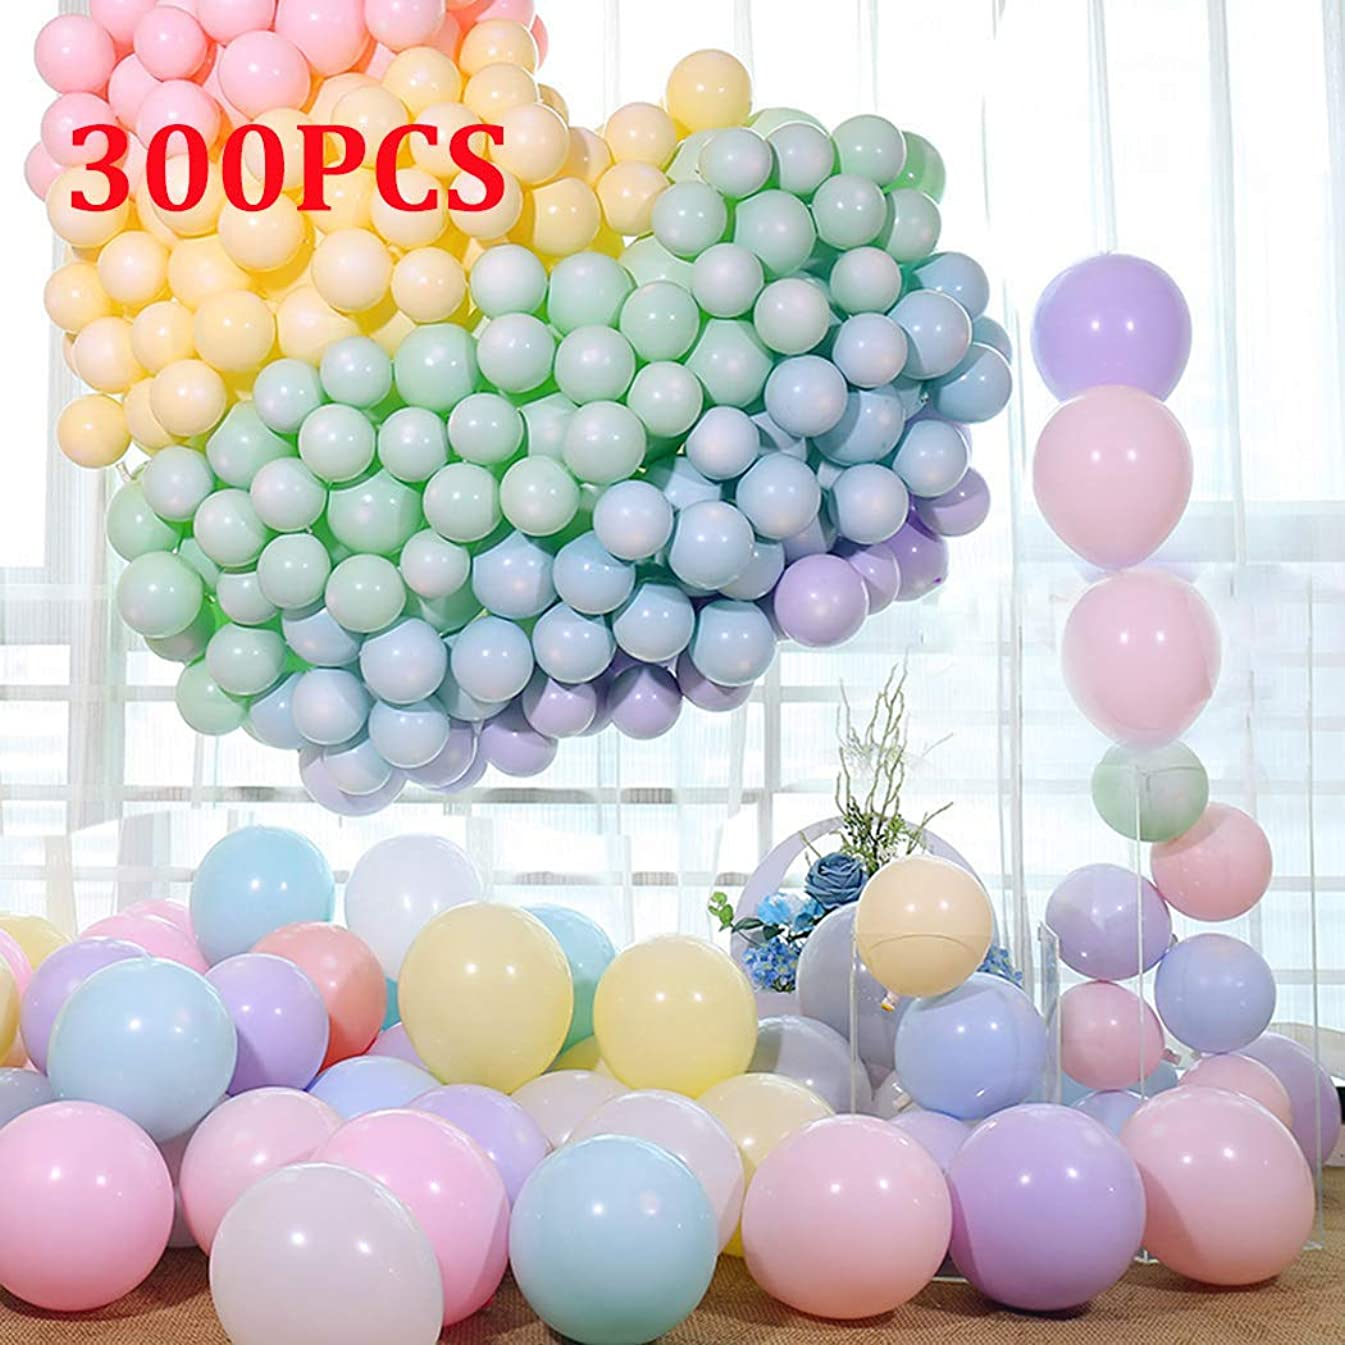 Party Balloons 10 Inches Macaron Candy Colored Latex Balloons Set (300 PCS) for Birthday Wedding Bog Bachelorette Christmas Baby Shower Party Decorations- Multicolor